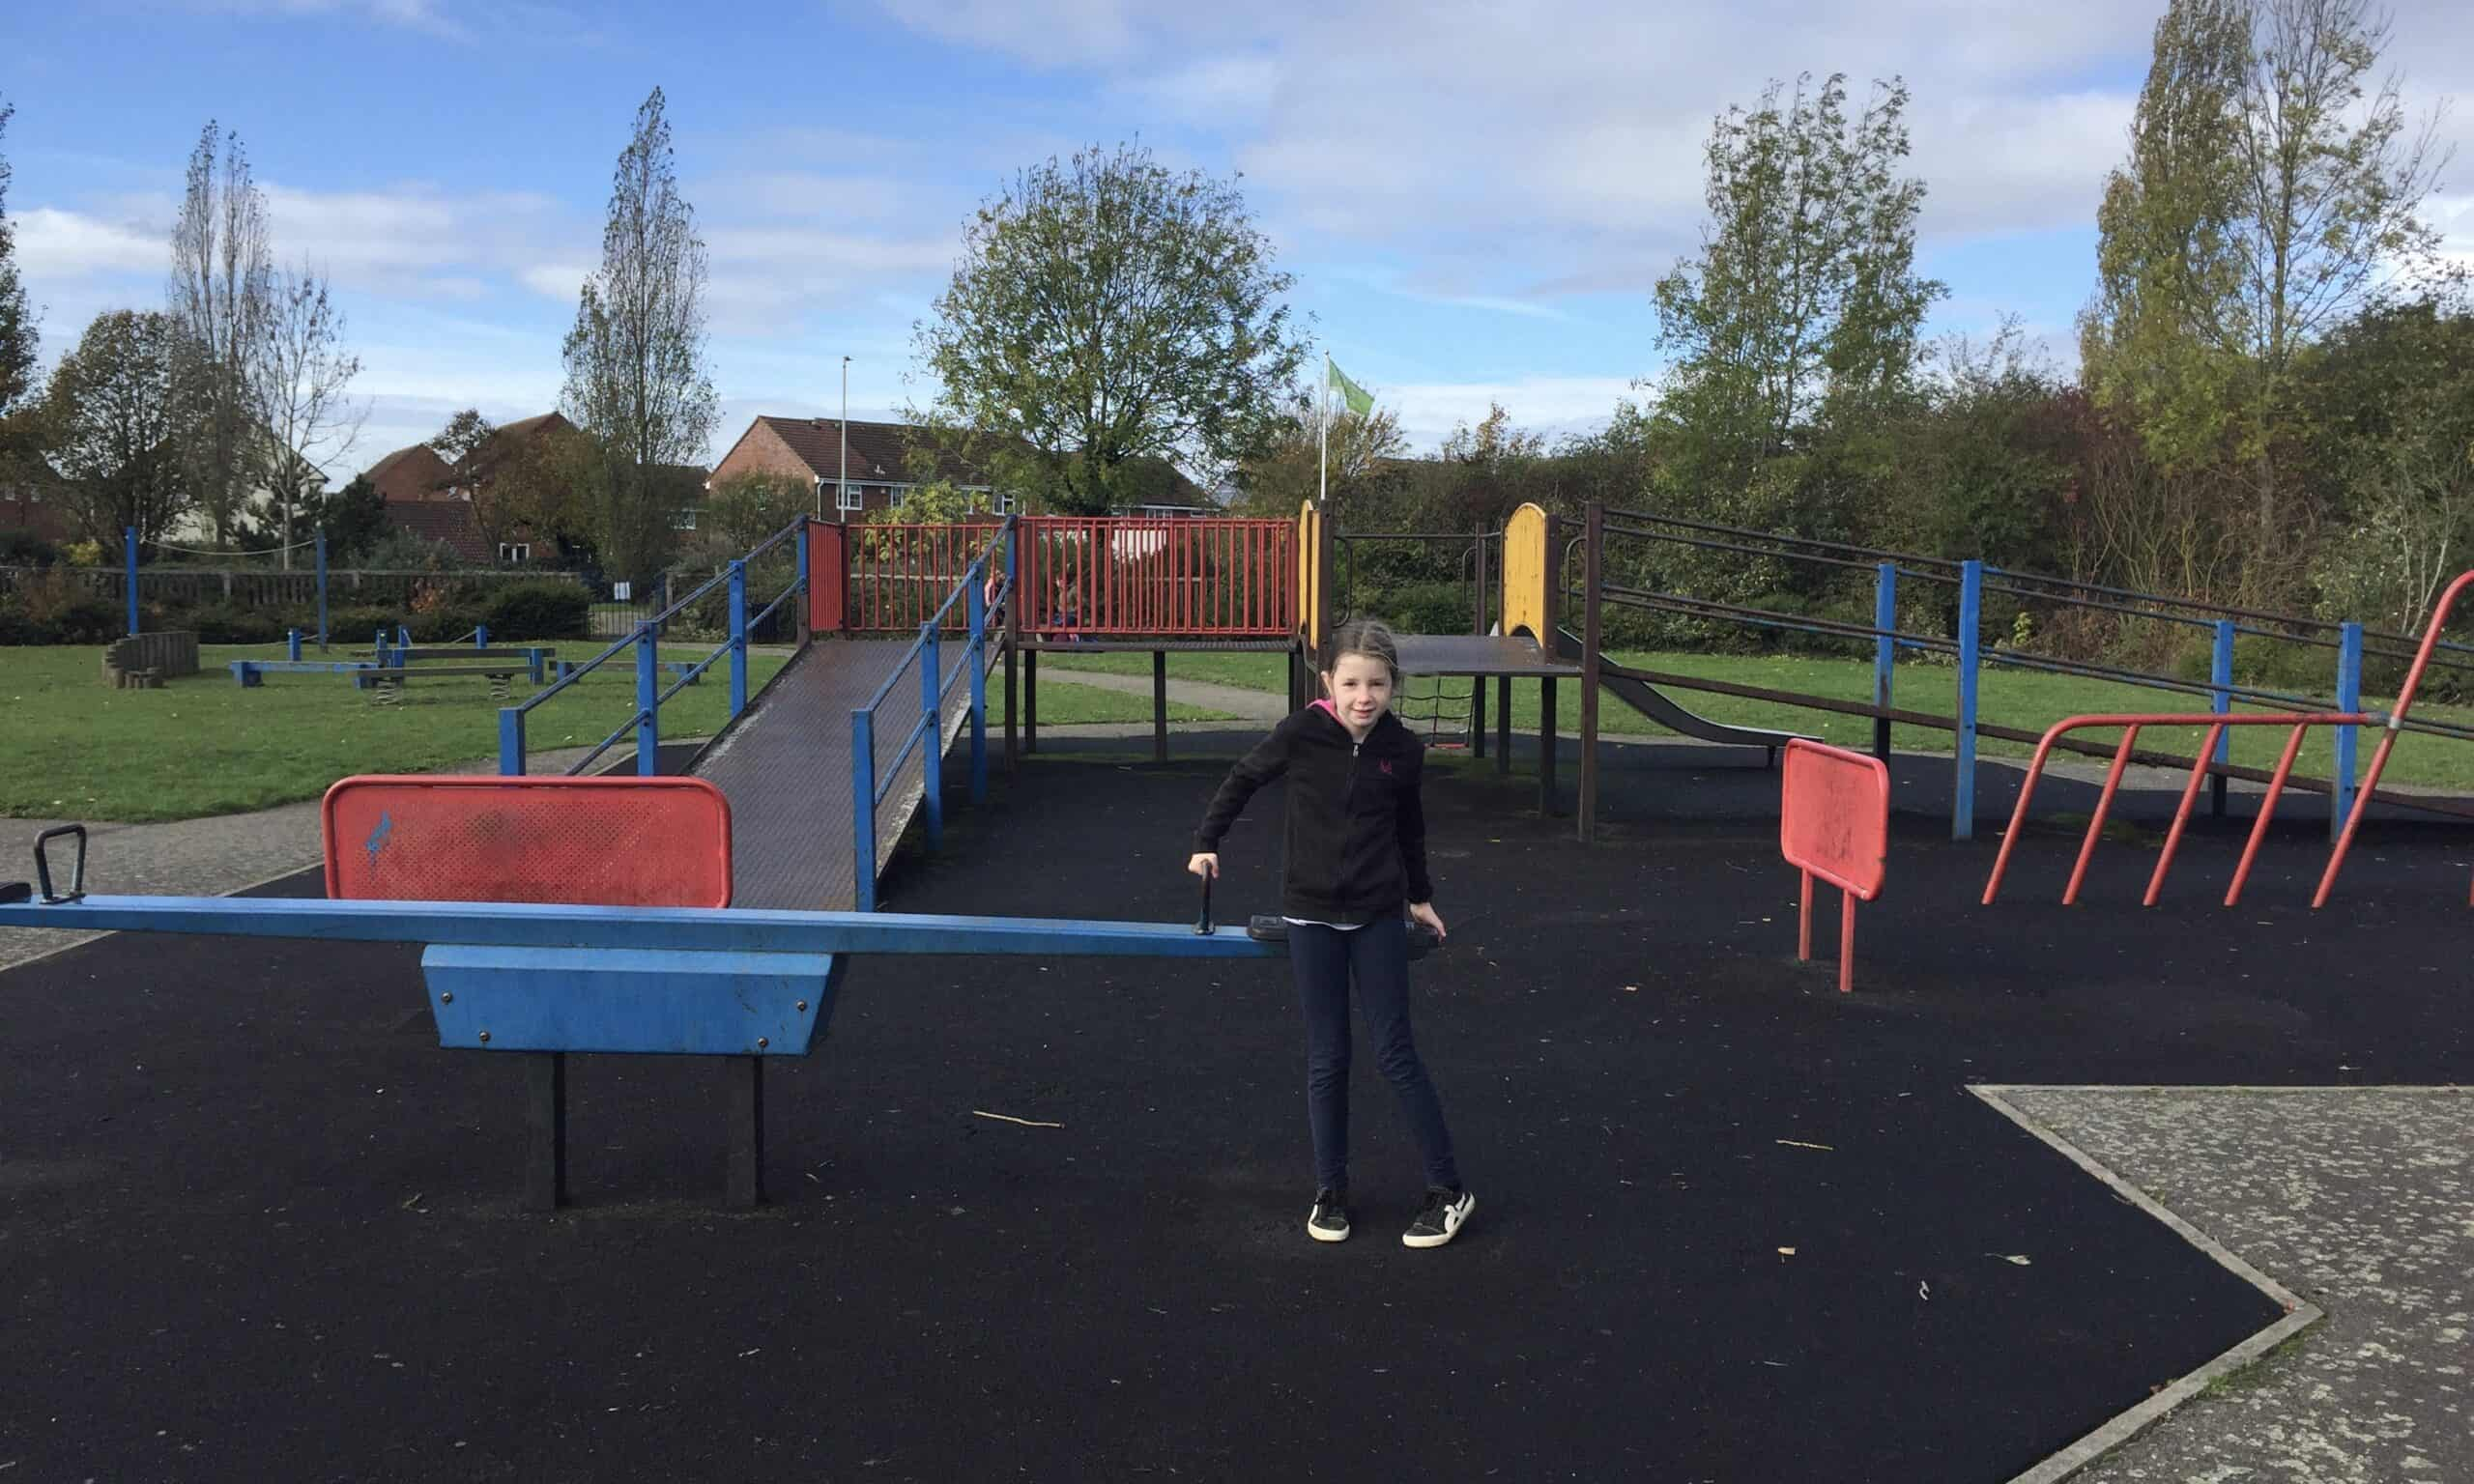 The accessible Play frame And seesaw at Brook End Gardens